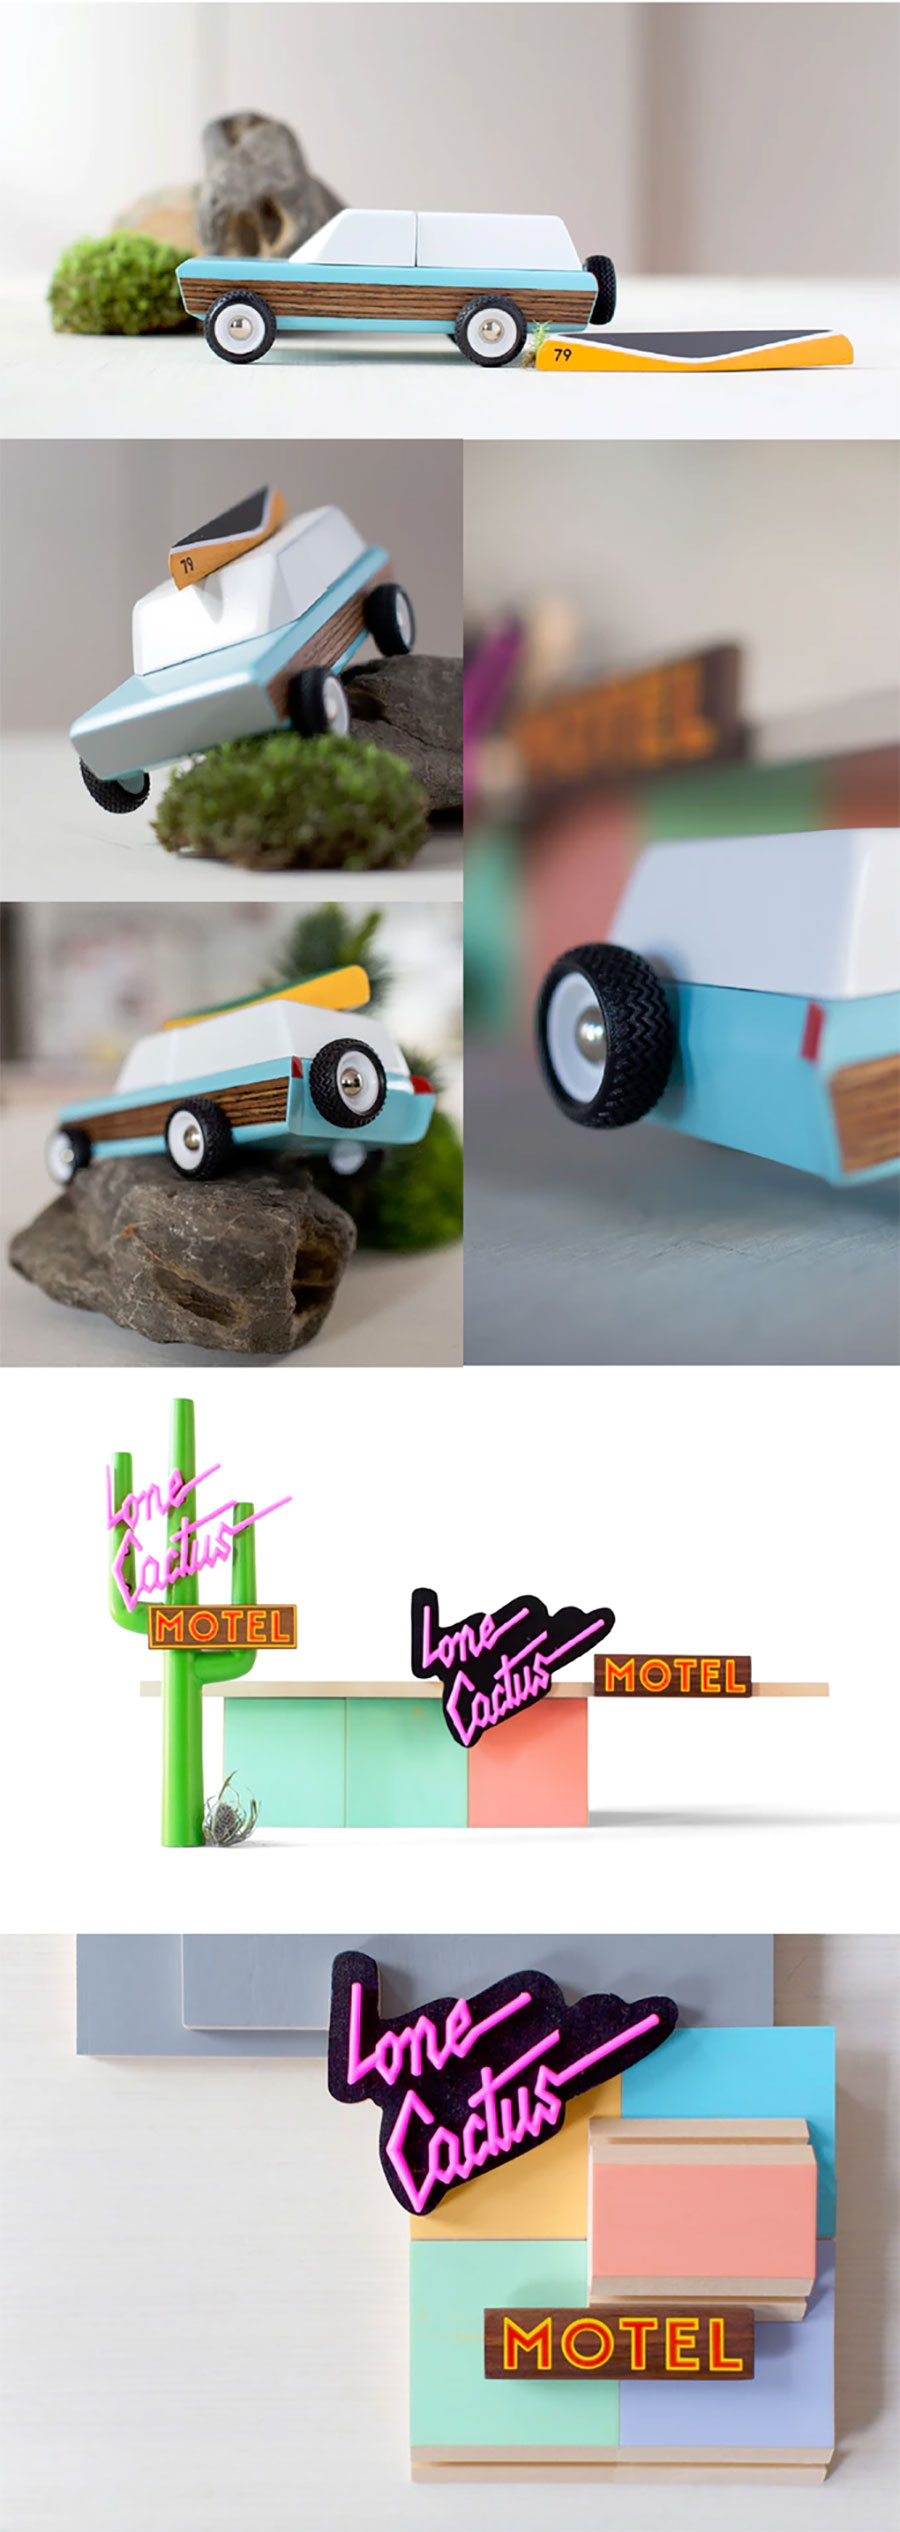 Coole Holz-Spielzeugautos im Retro-Look candyland-wooden-cars_03